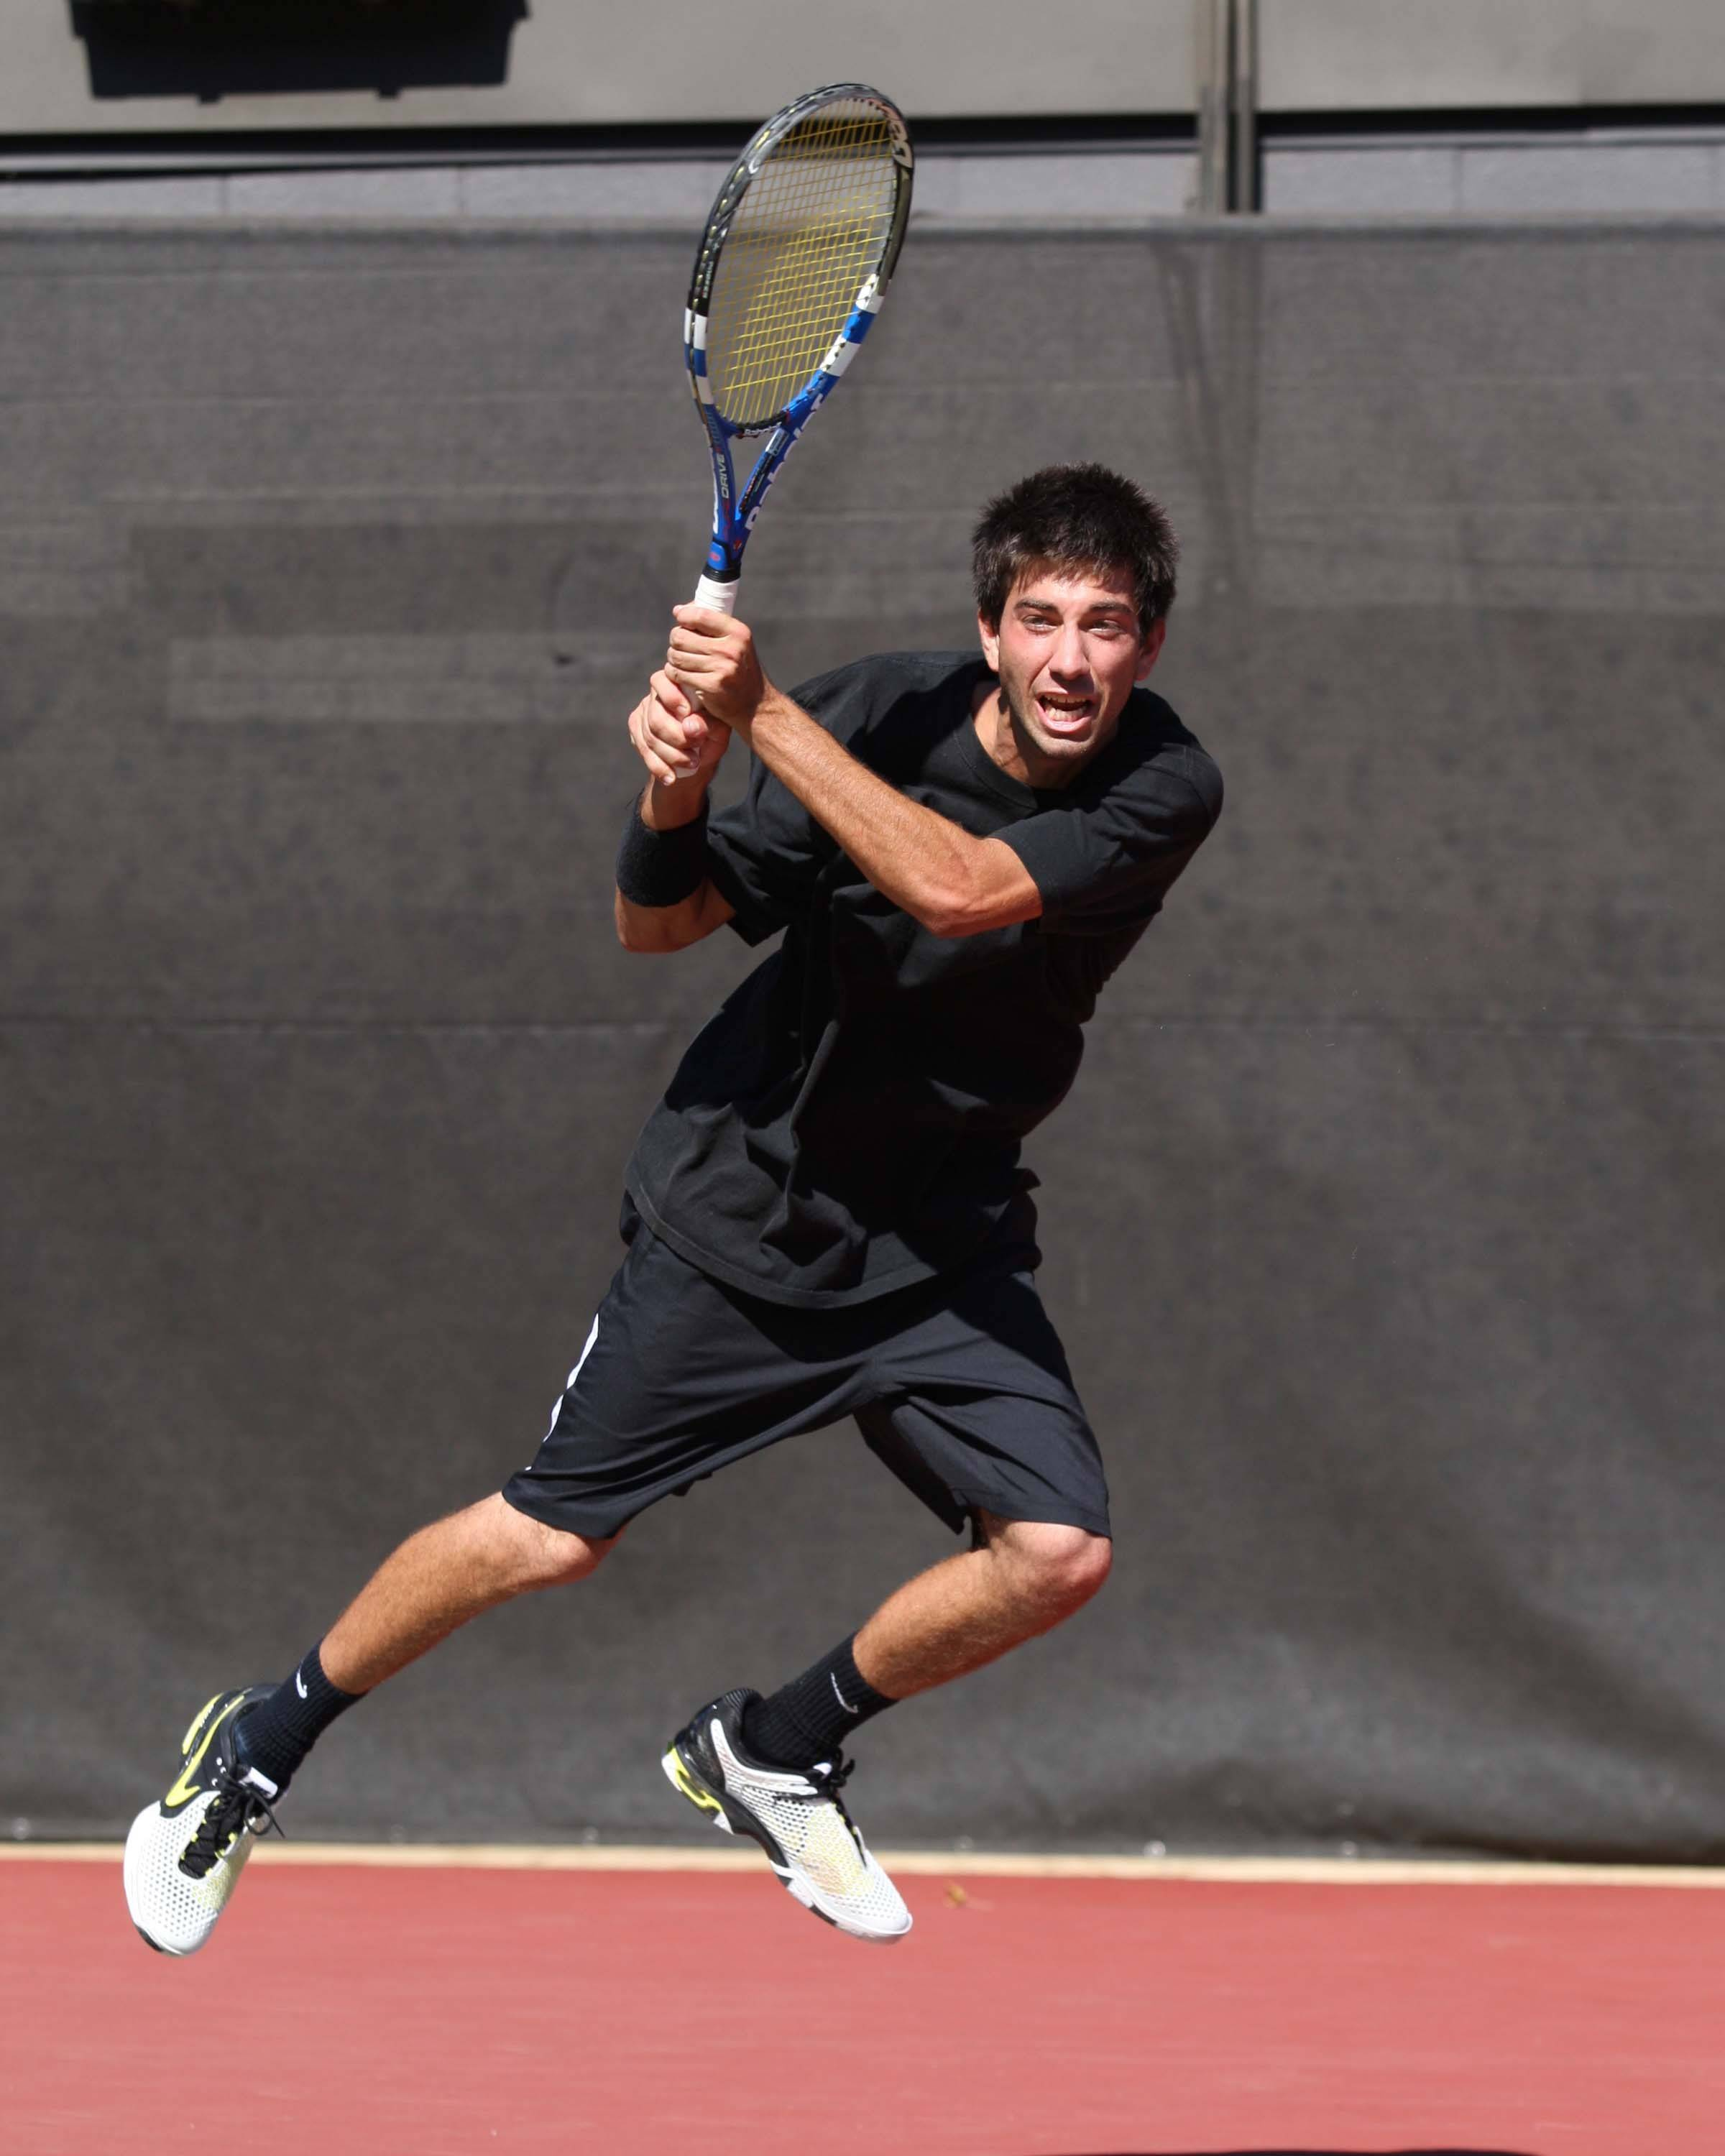 Jason Zafiros at the 2011 ITA Southeast Regionals in Athens, Ga.